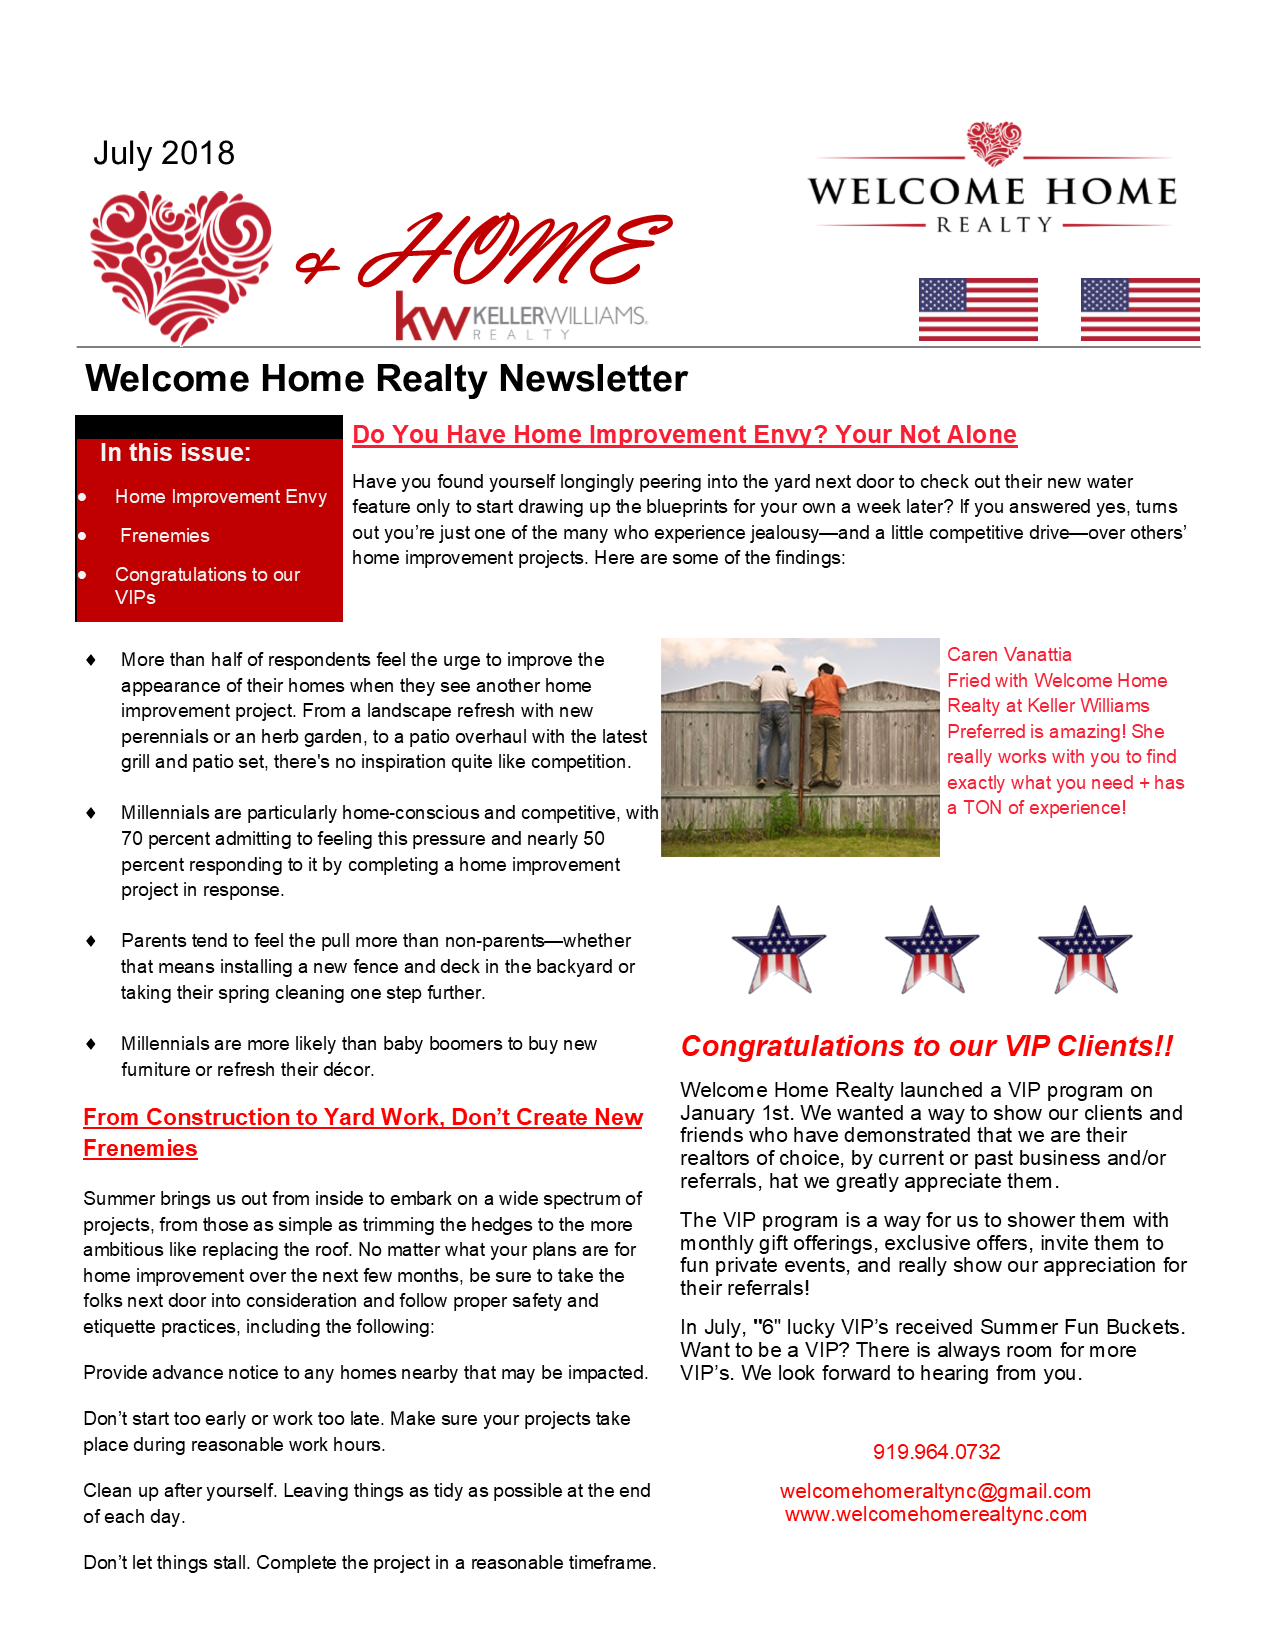 Heart & Home July 2018